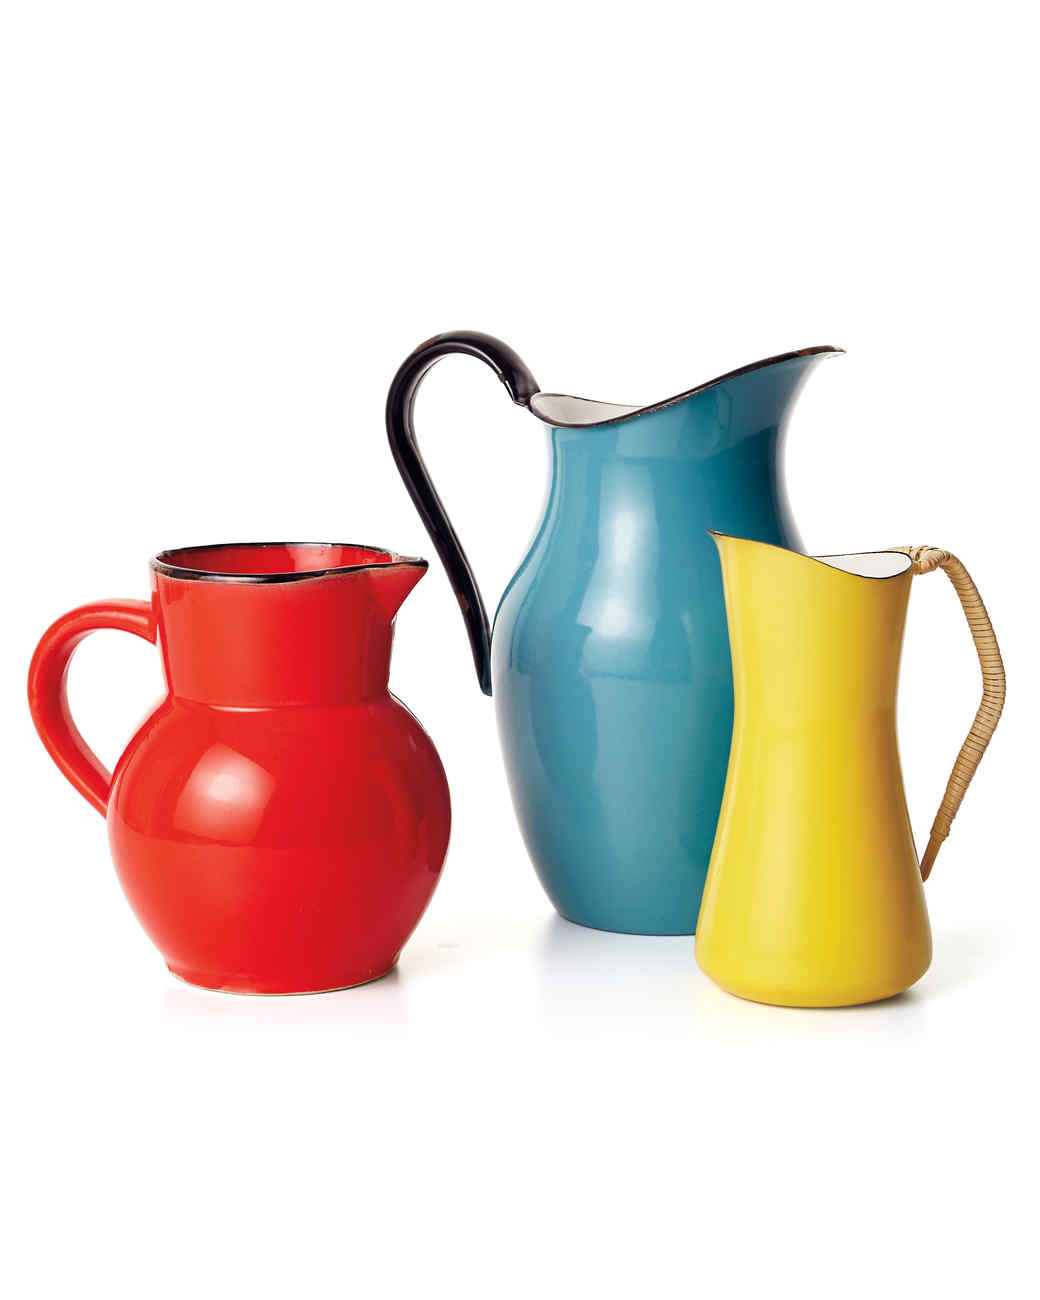 How to Fix a Broken Handle on a Ceramic Pitcher